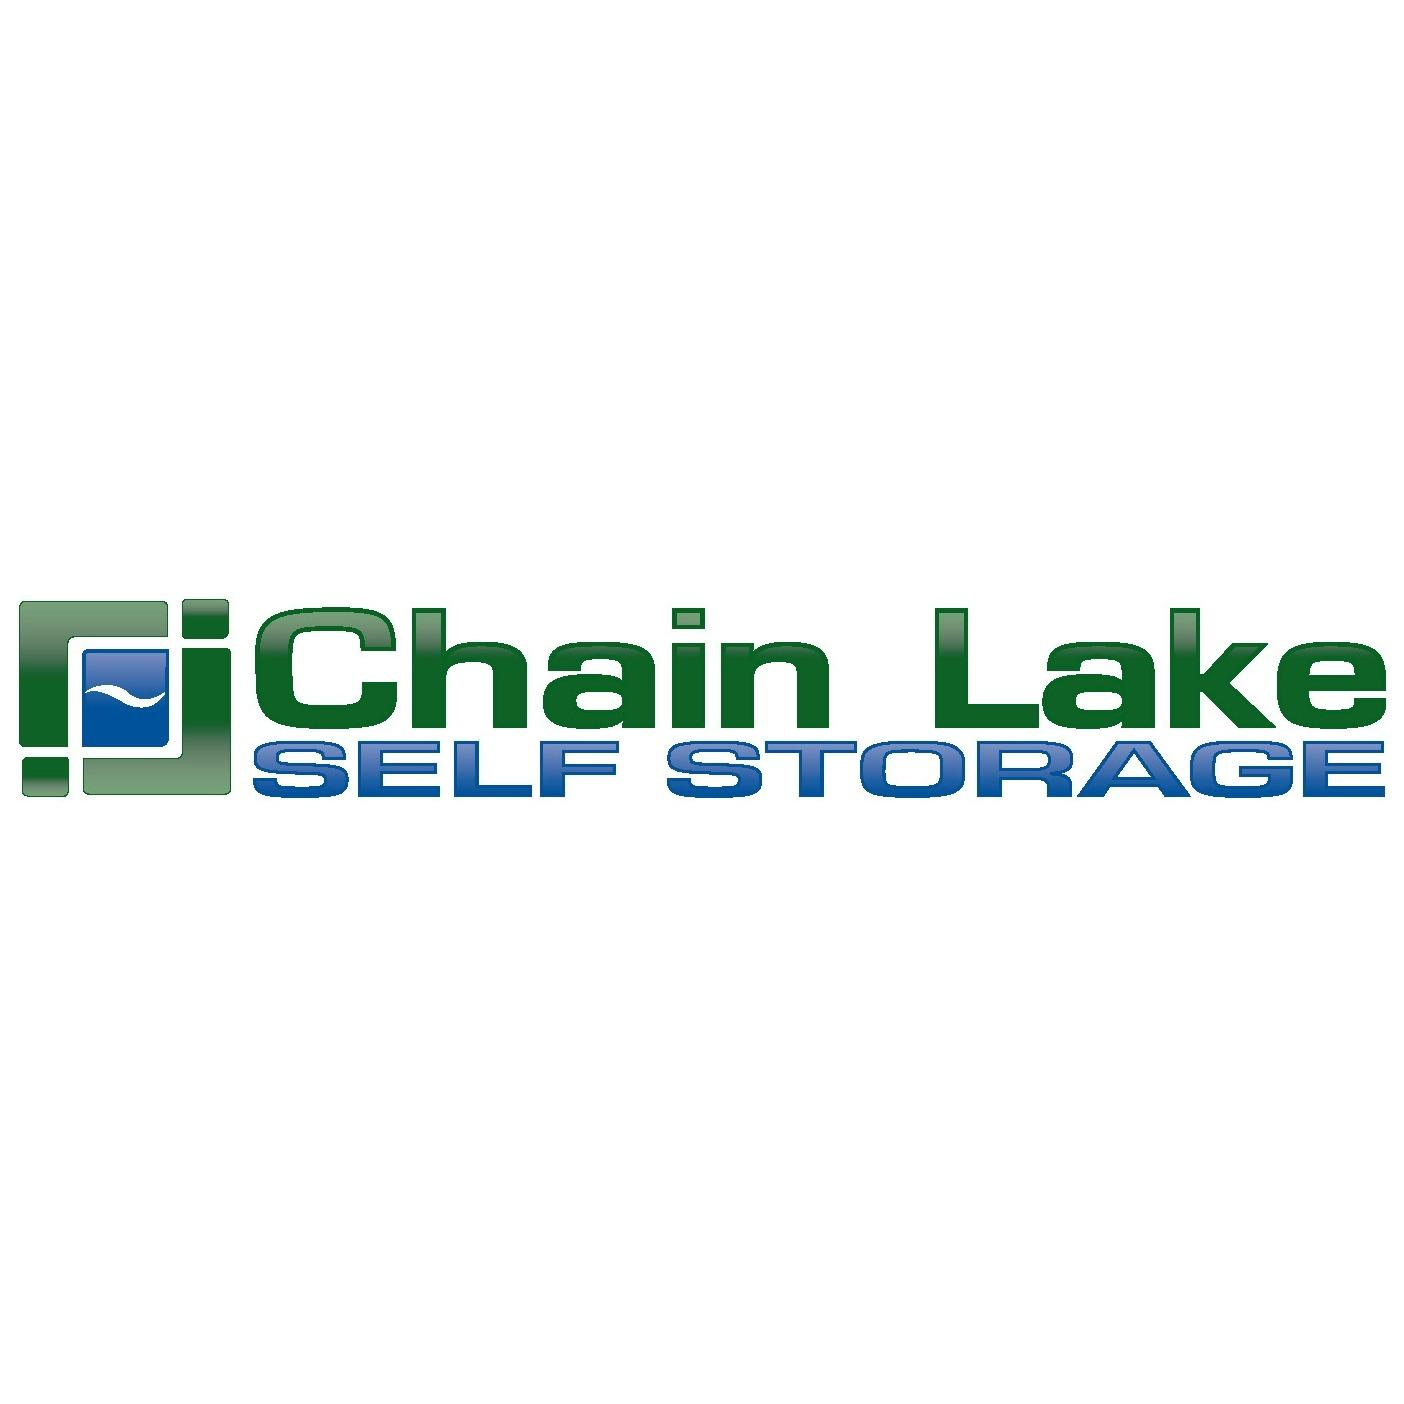 Chain Lake Self Storage